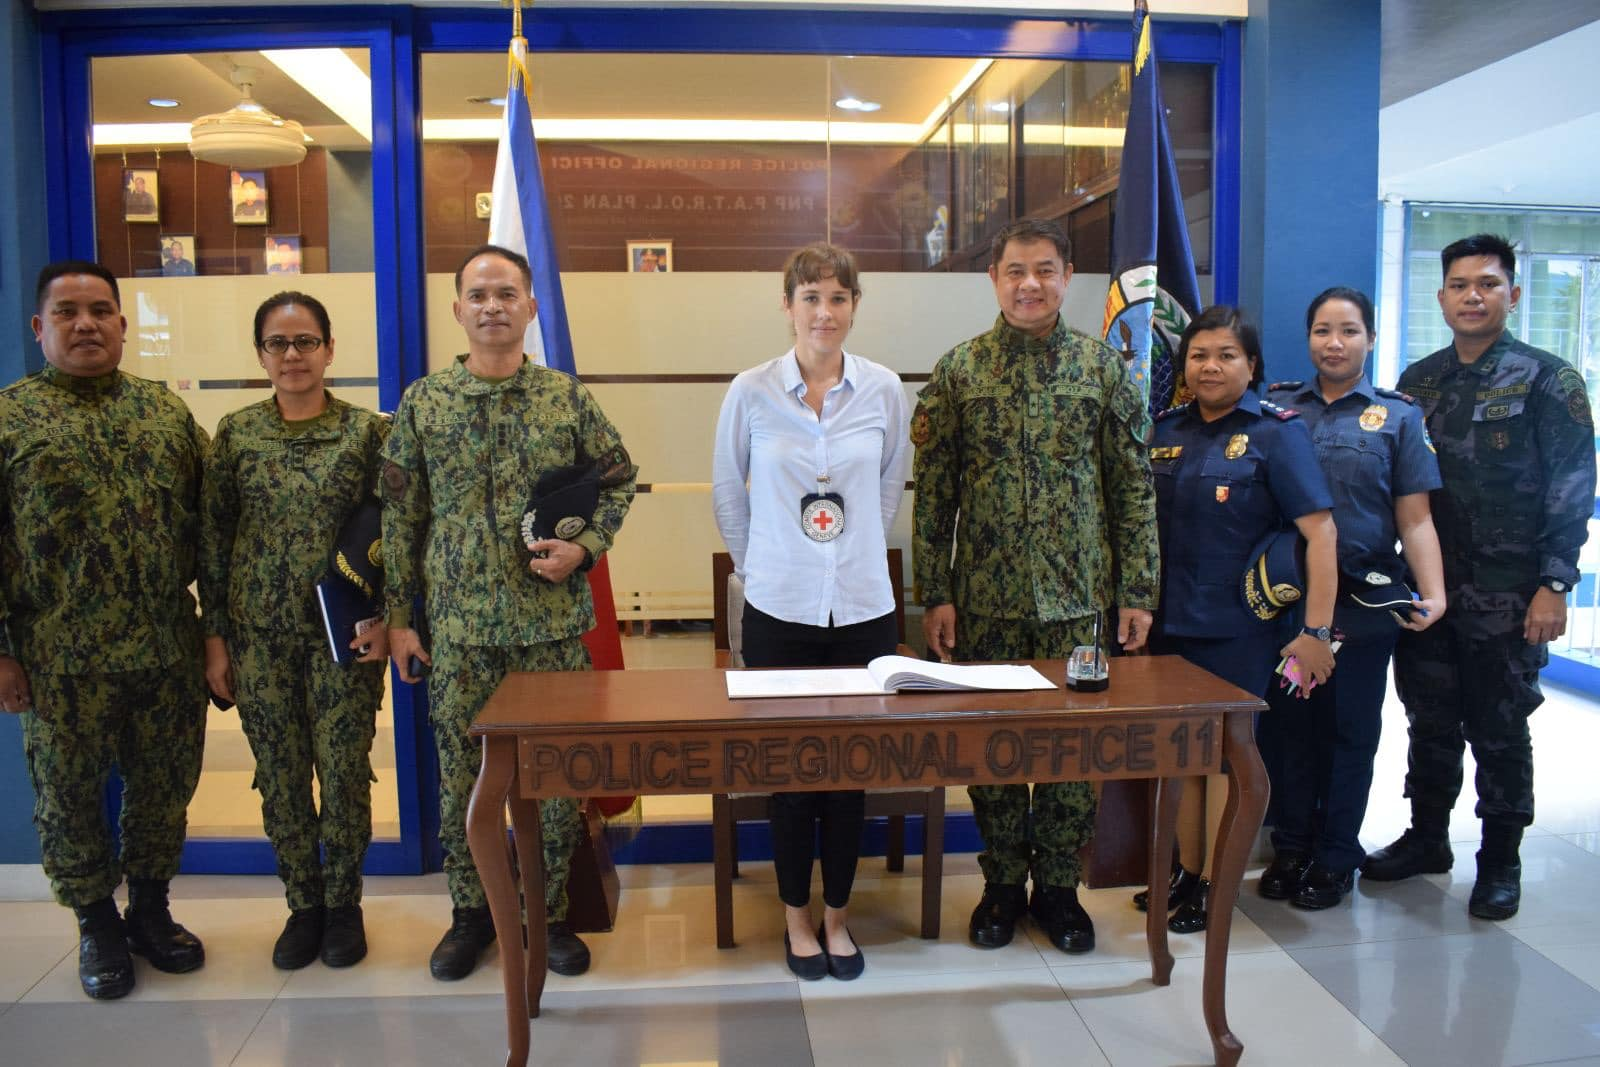 RD PRO 11, PBGen Marcelo C Morales together with the regional staff officers welcomed ICRC- Head of Sub-Delegation (Davao) Ms. Tara Montgomery